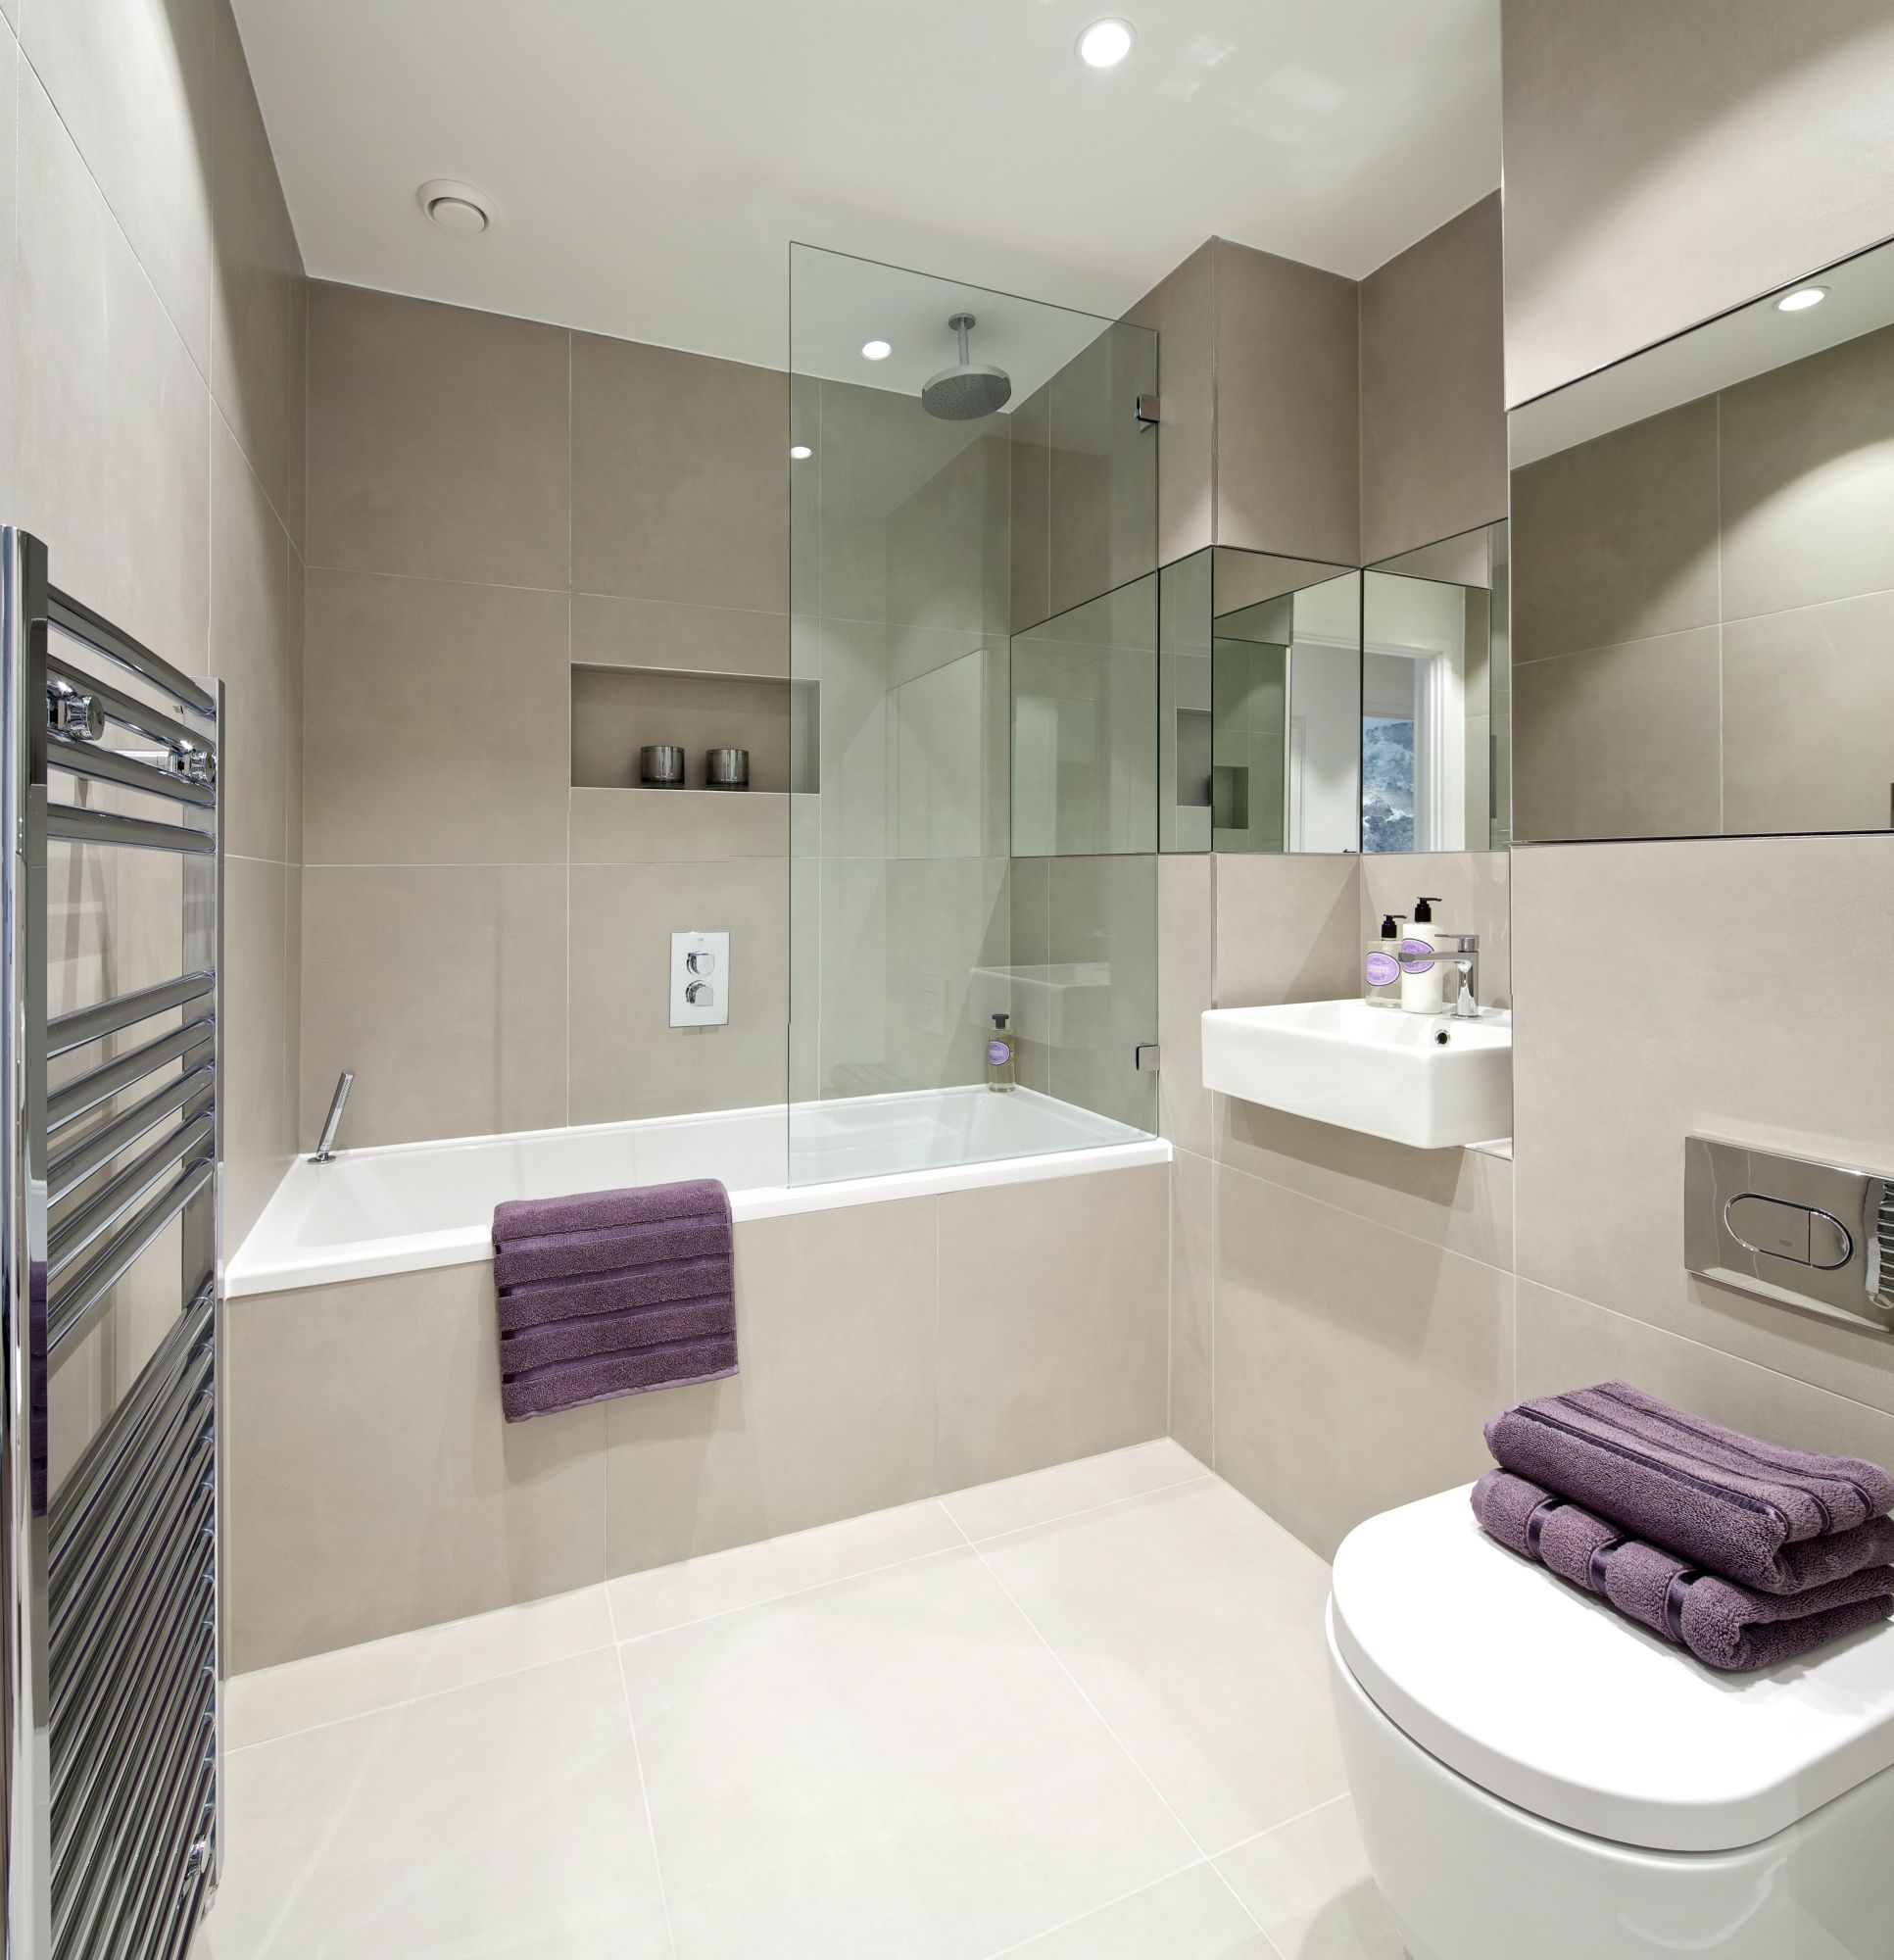 Big Bathrooms Ideas: Bathroom : Another Stunning Show Home Design By Suna Interior Design